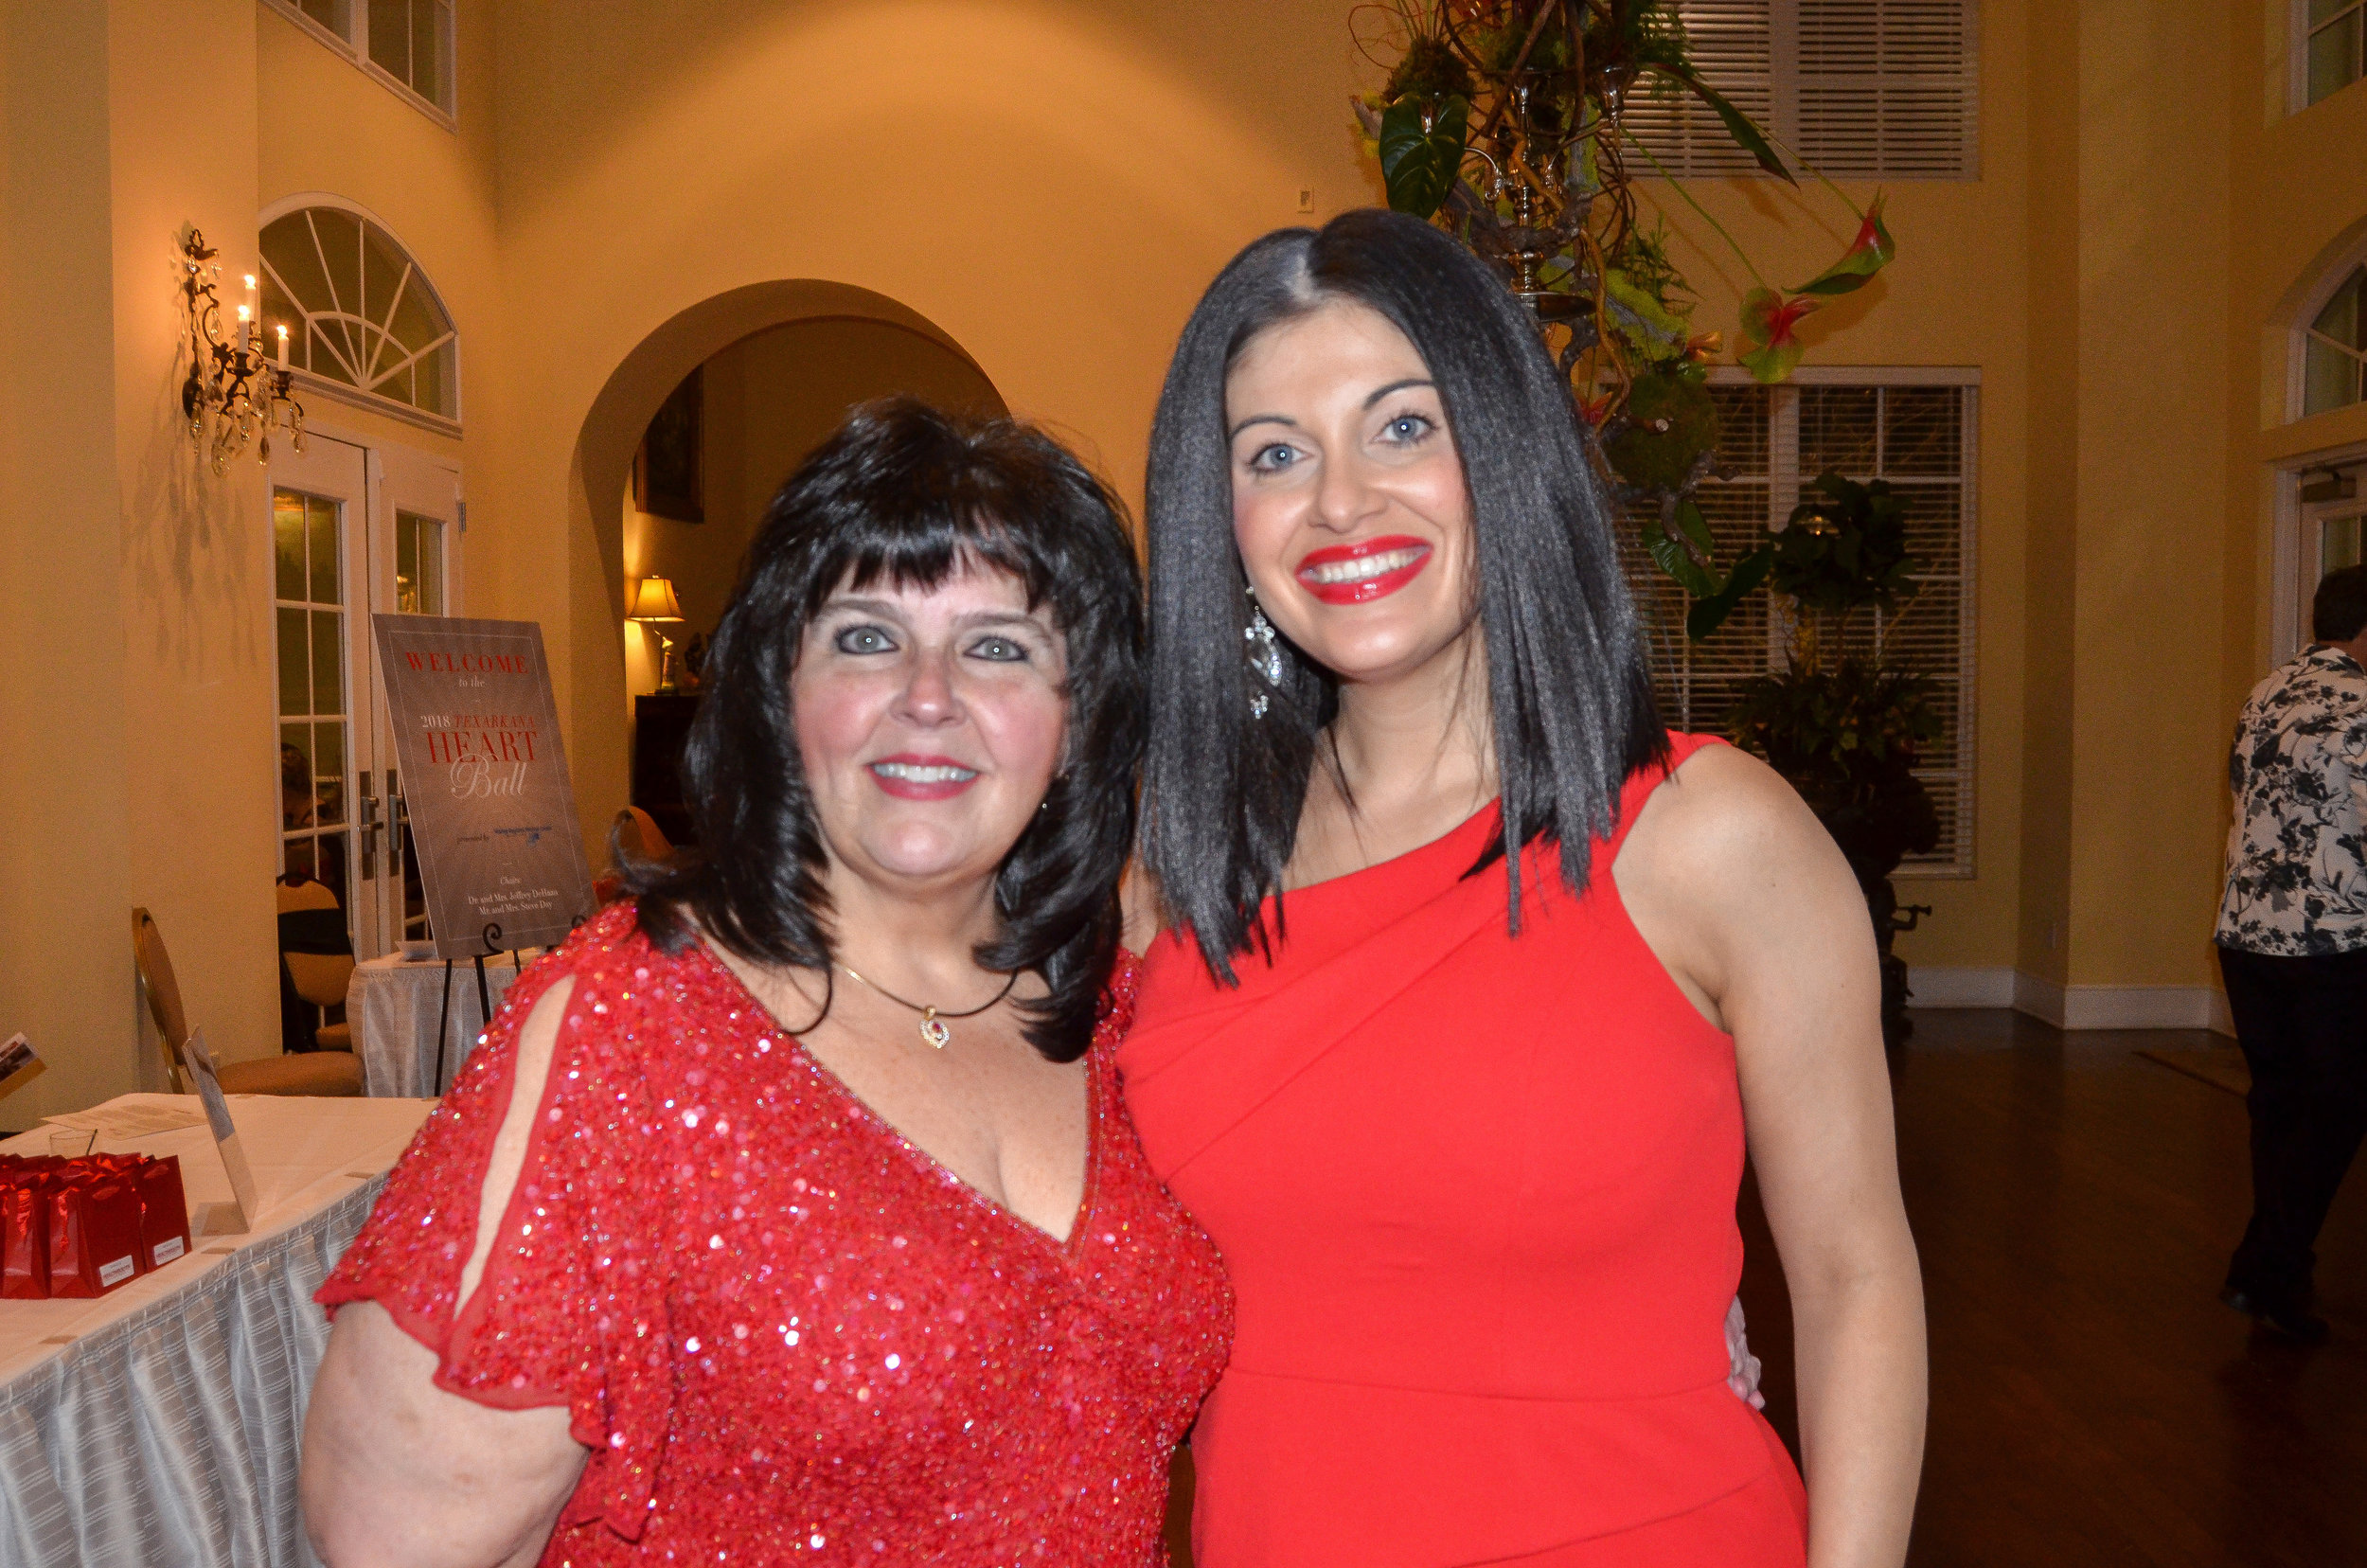 Dr. Cindy Porter and Erica Cain